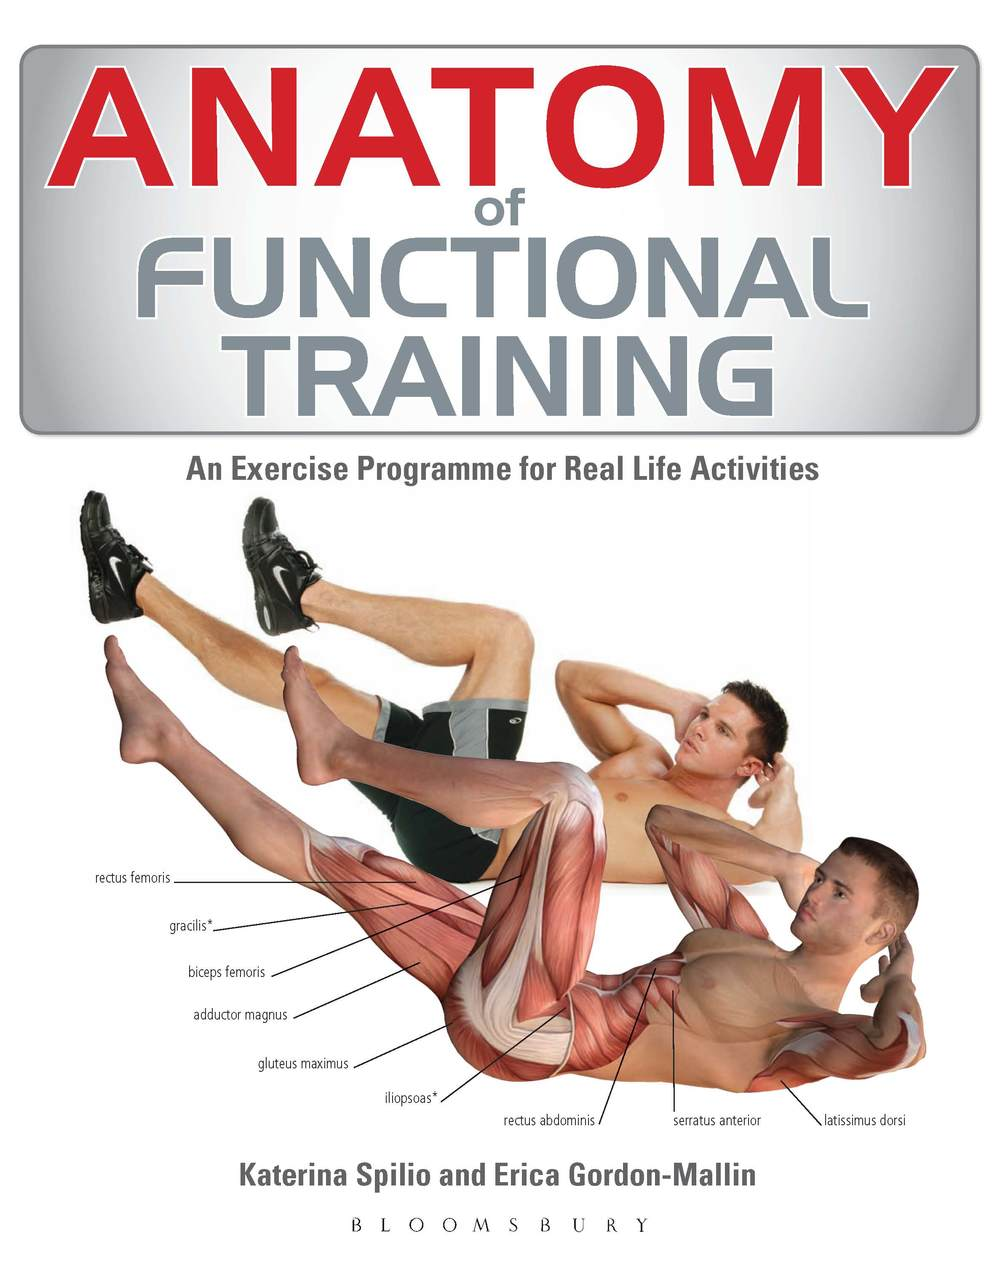 AnatomyofFunctionalTraining 1.jpg